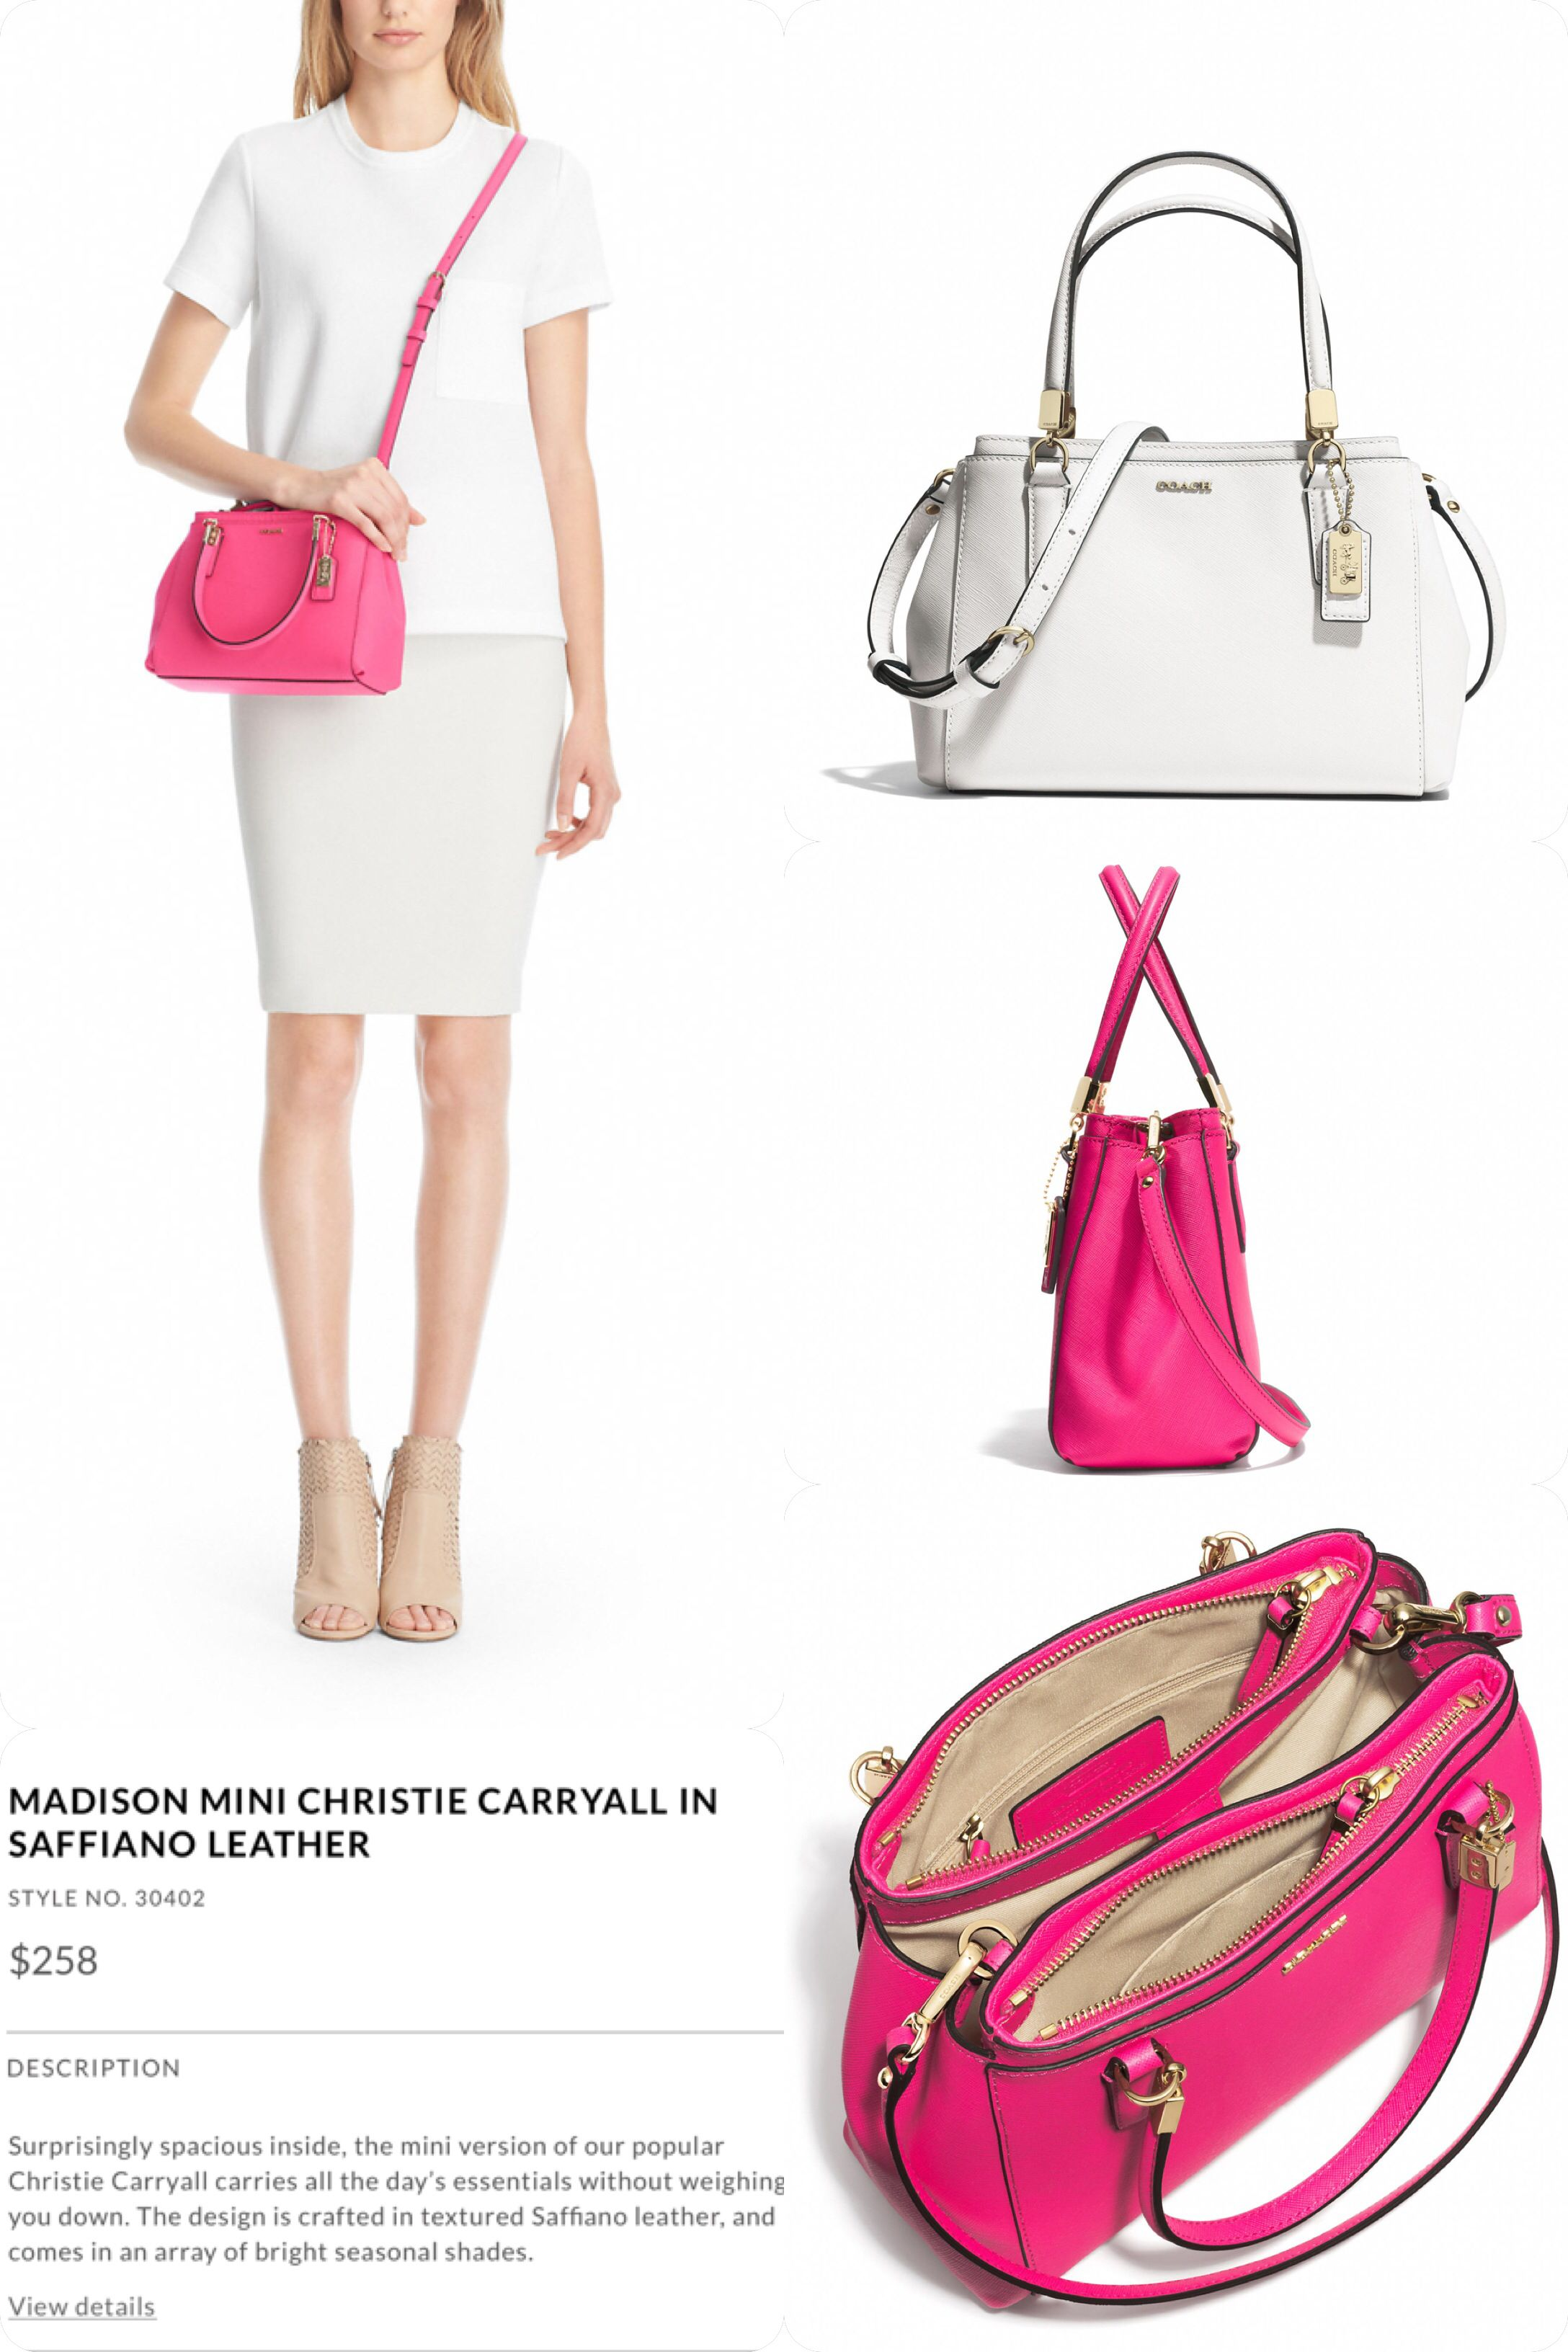 4e995c0cf COACH Official Site. $258 Madison Mini Christie Carryall - Saffiano Leather